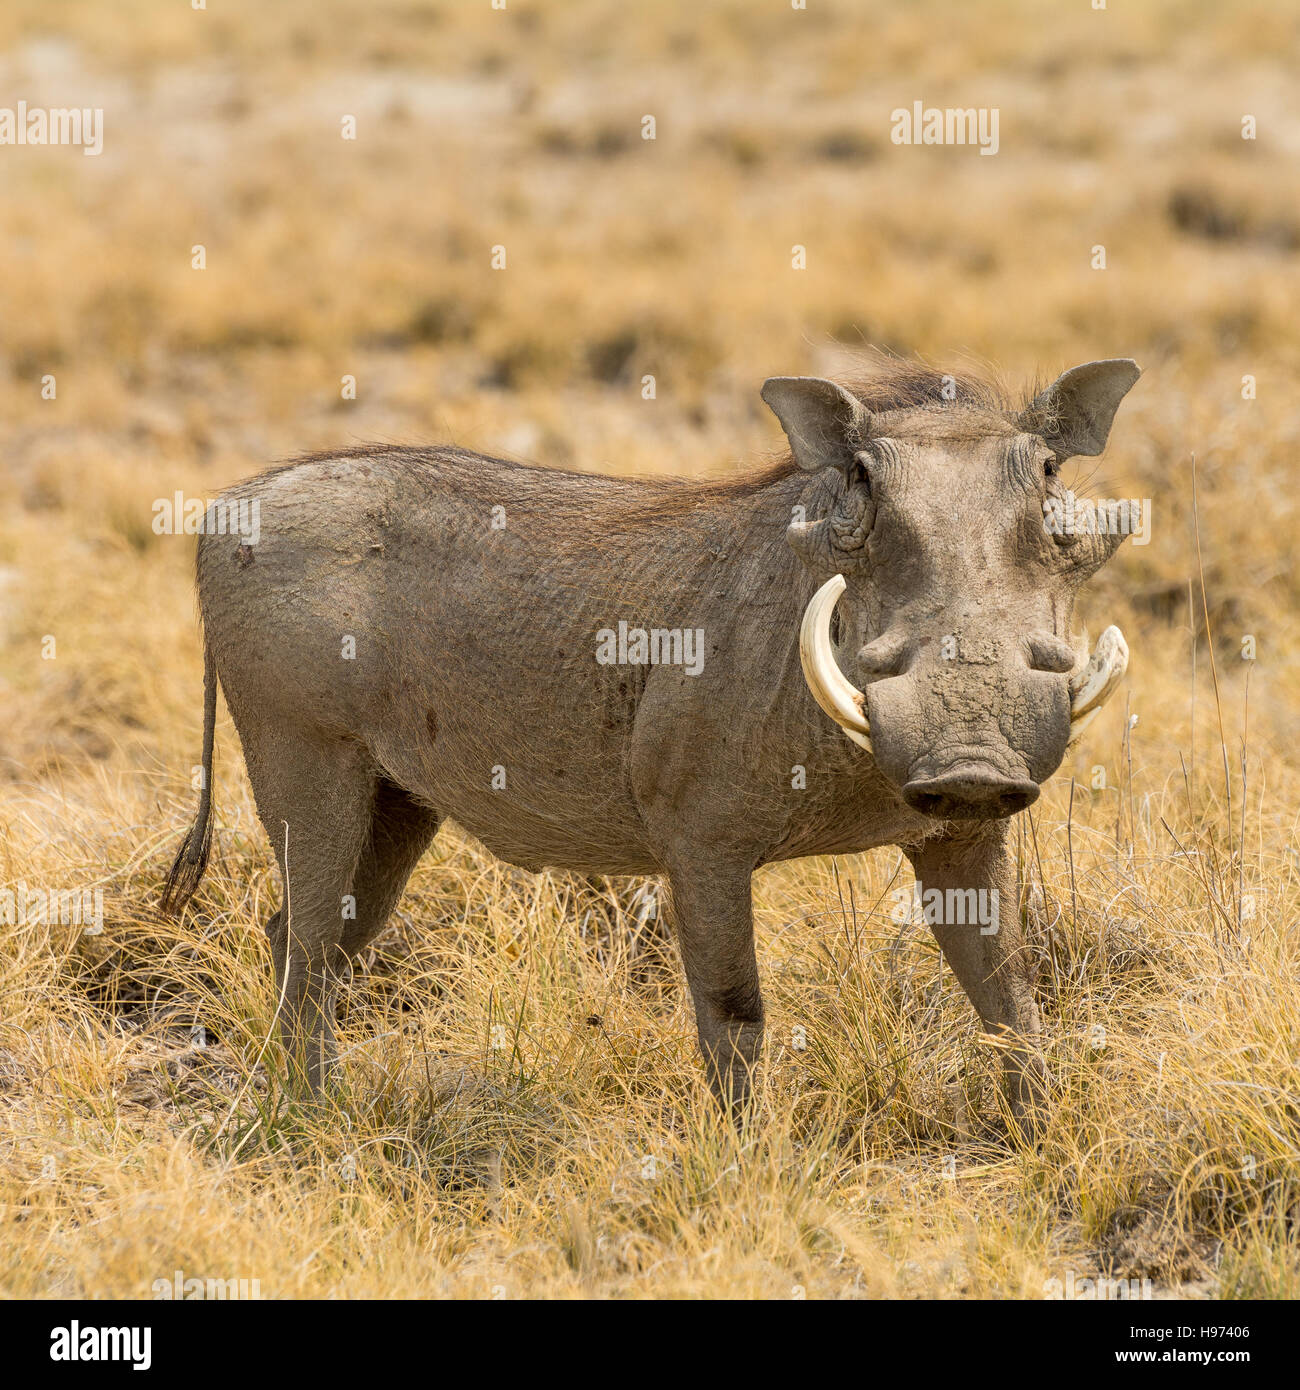 Portrait of a Warthog, seen in namibia, africa. - Stock Image